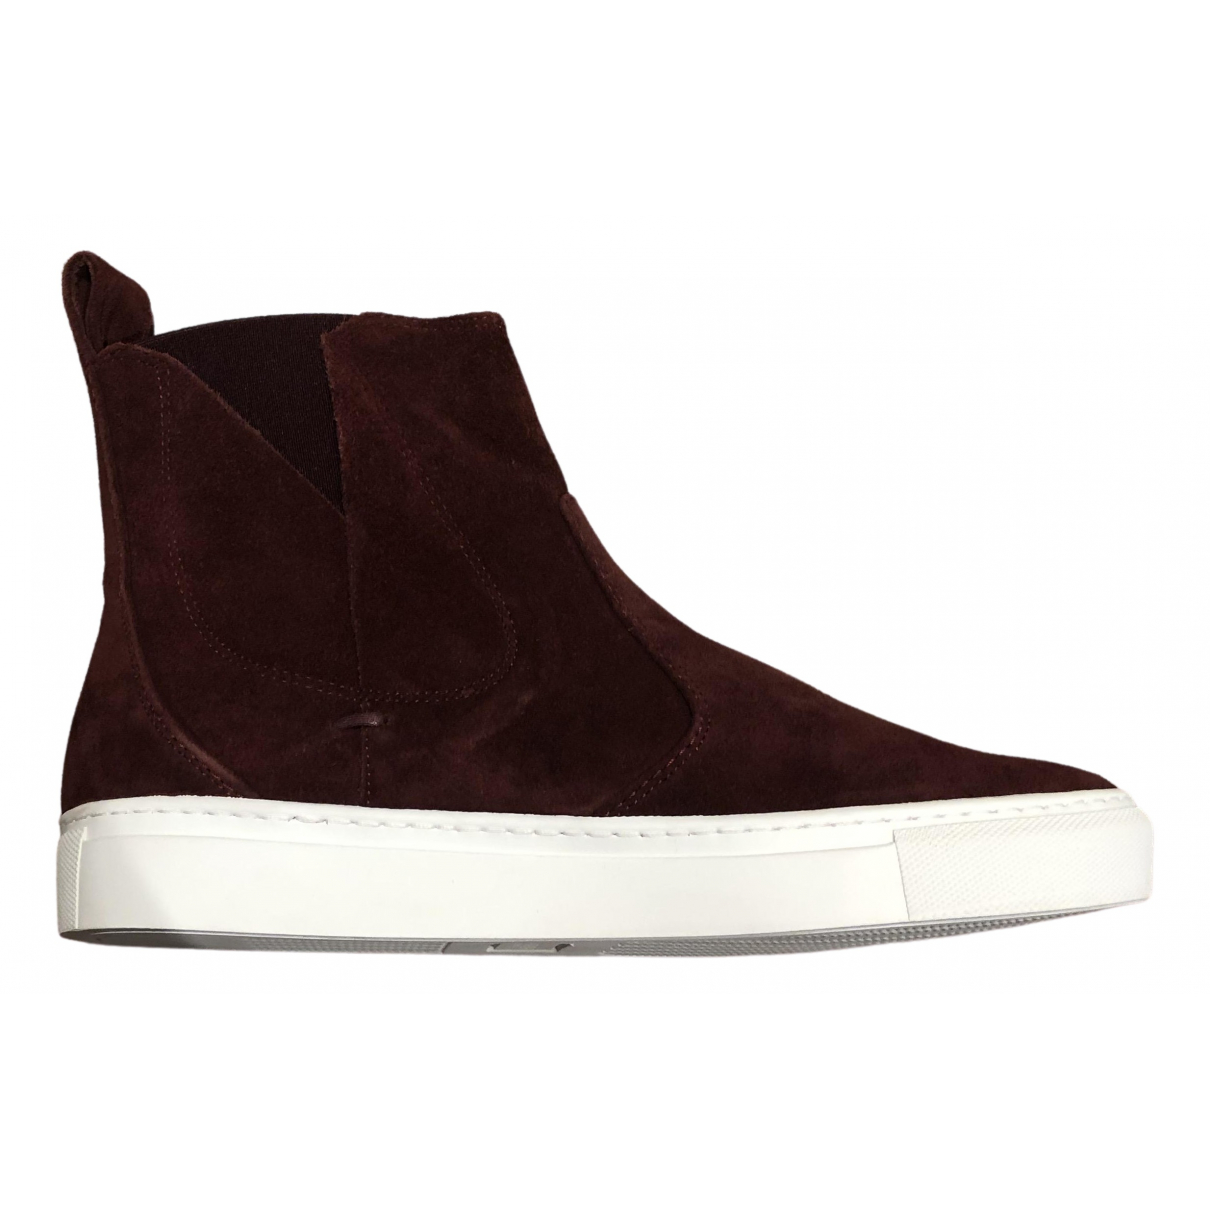 Lanvin \N Sneakers in  Bordeauxrot Veloursleder